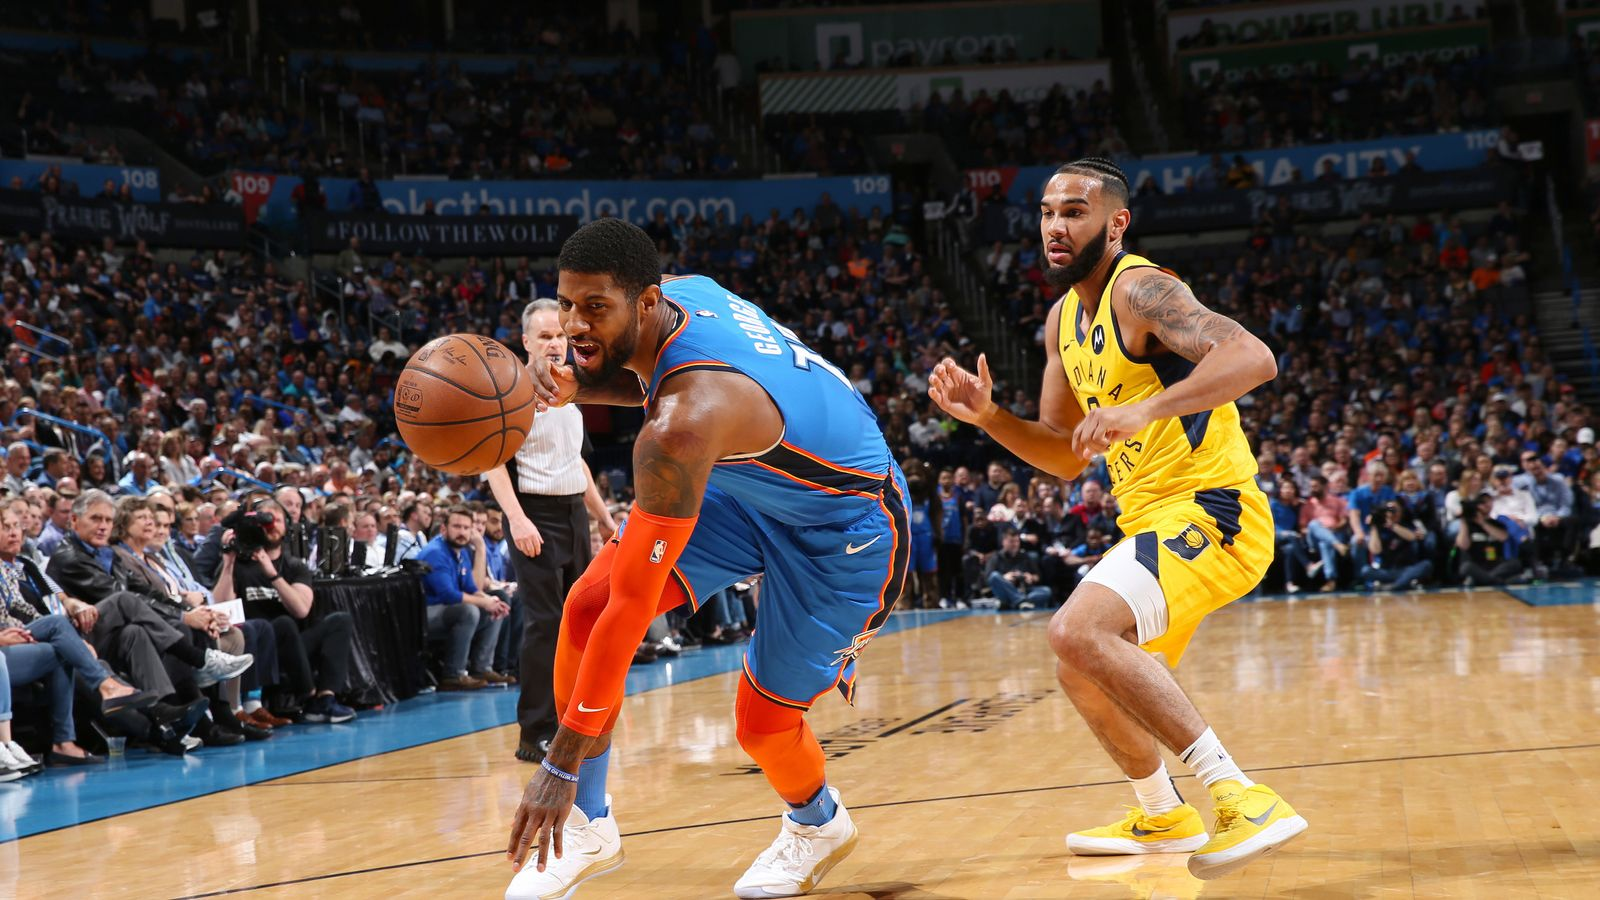 130d71d8e59 Watch Oklahoma City Thunder @ Portland Trail Blazers live on Sky Sports  Arena in the early hours of Wednesday morning (3:30am)Watch Oklahoma City  Thunder ...